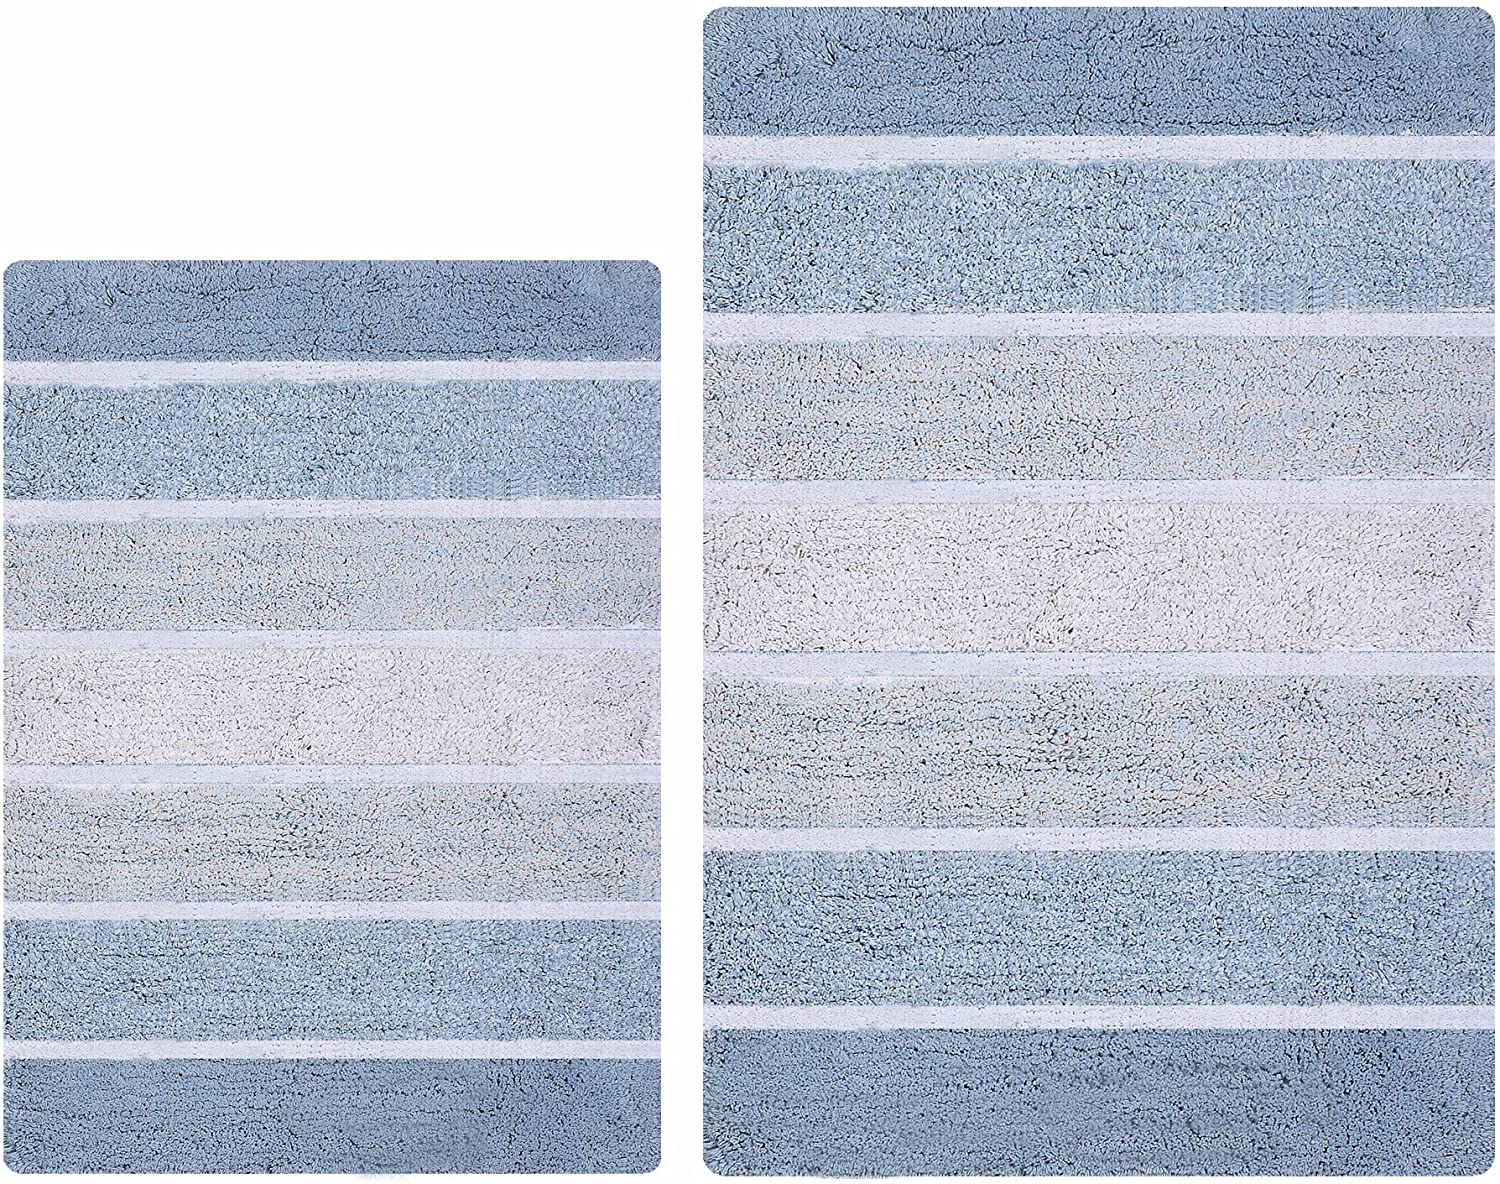 Quilted Stripe Luxury Bath Rug Set of 2, Mat Set, Soft Plush Anti-Skid Shower Rug/Toilet Mat.Quilted Rugs, Super Absorbent mats, Machine Washable Bath Mat,Size 21x32-17x24 Blue/White